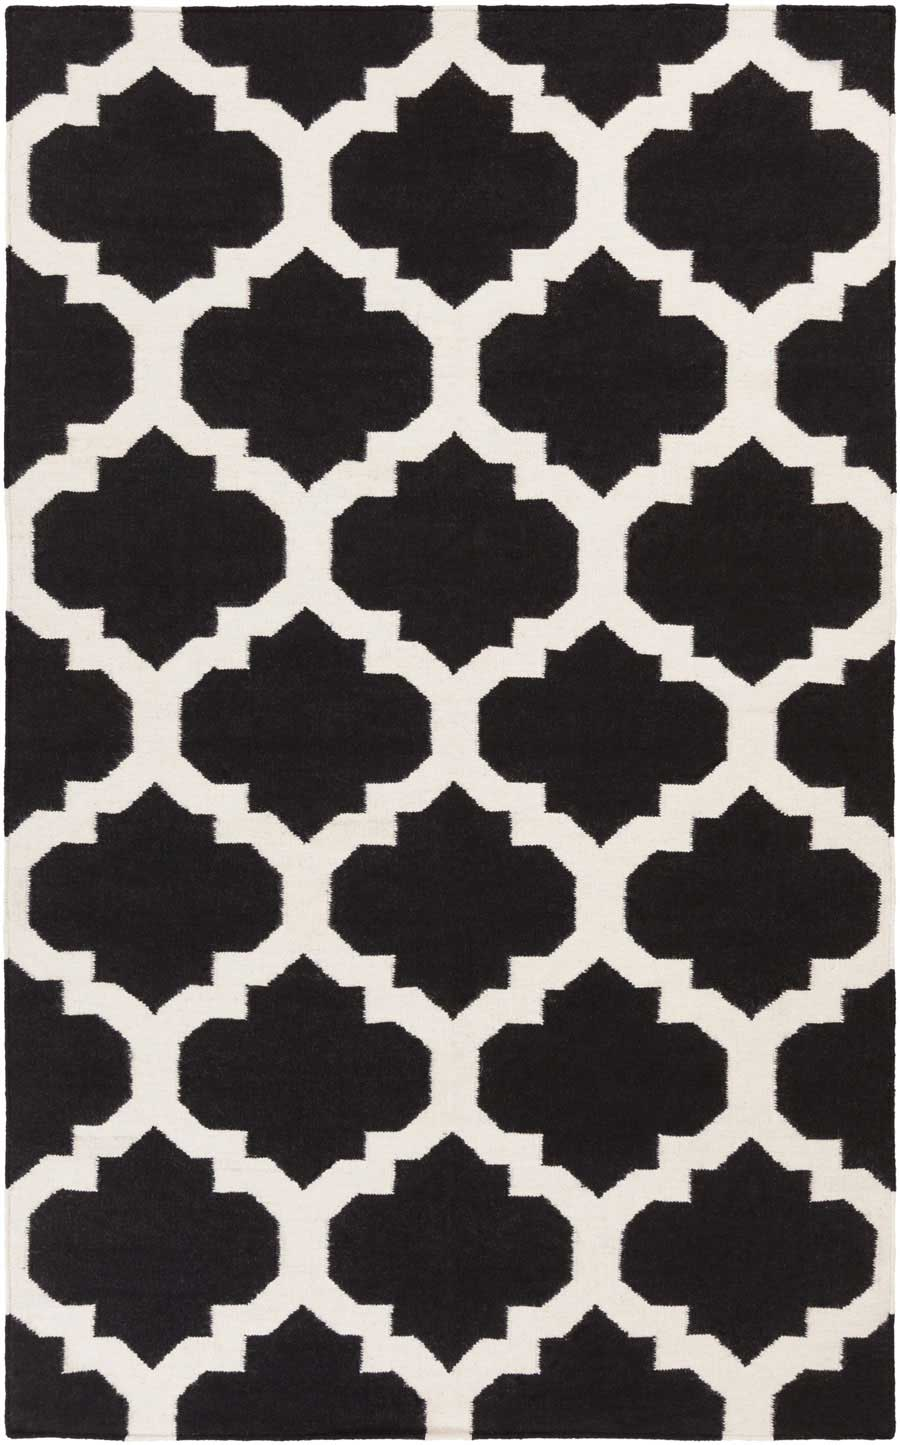 Minimalist Living Room Style with Black White Quatrefoil Stencil.